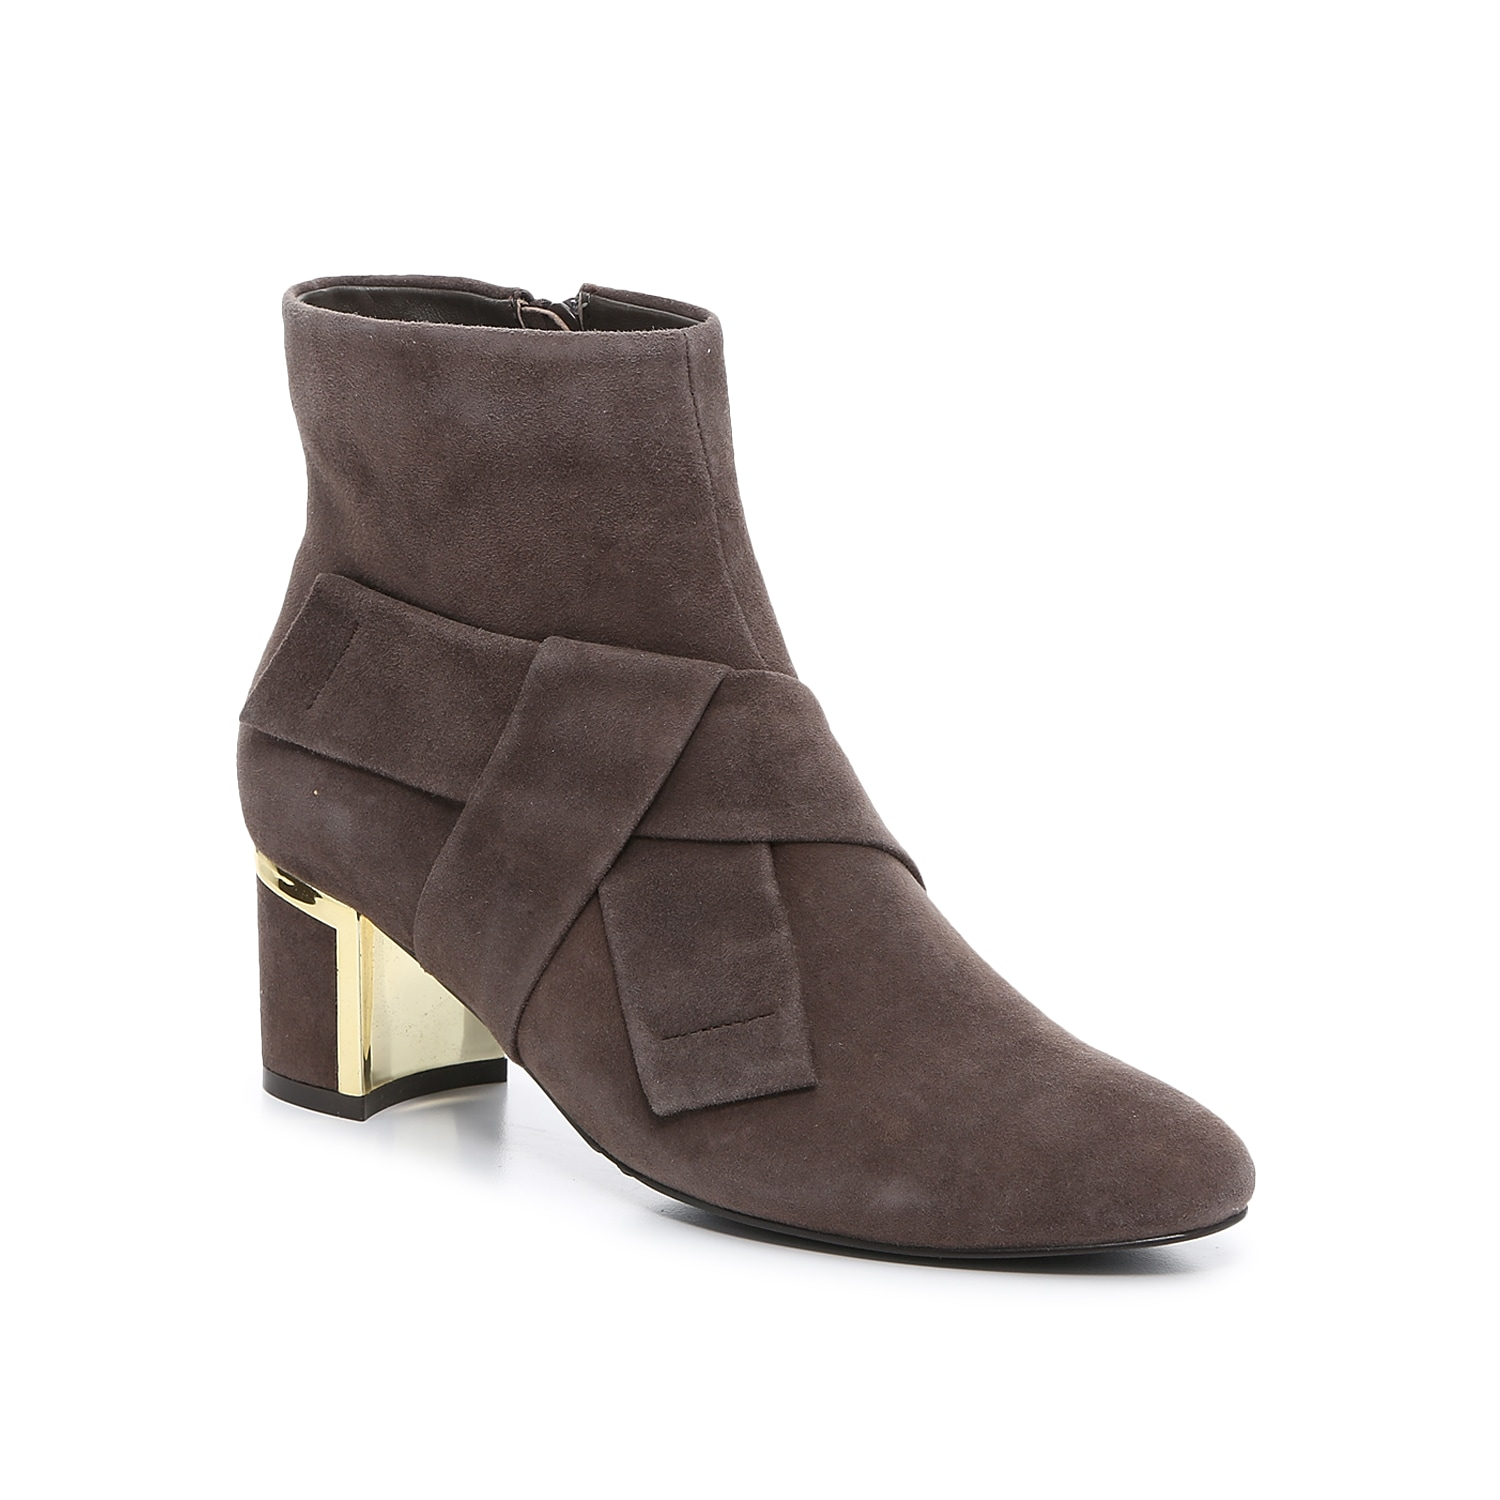 Rich suede and a bow-tied accent bring a sense of elegance to the Dadop ankle booties from VANELi. The mid-height heel is trimmed with a metallic rand that extends down the underside for a glimmer of silver.Click here for Boot Measuring Guide.